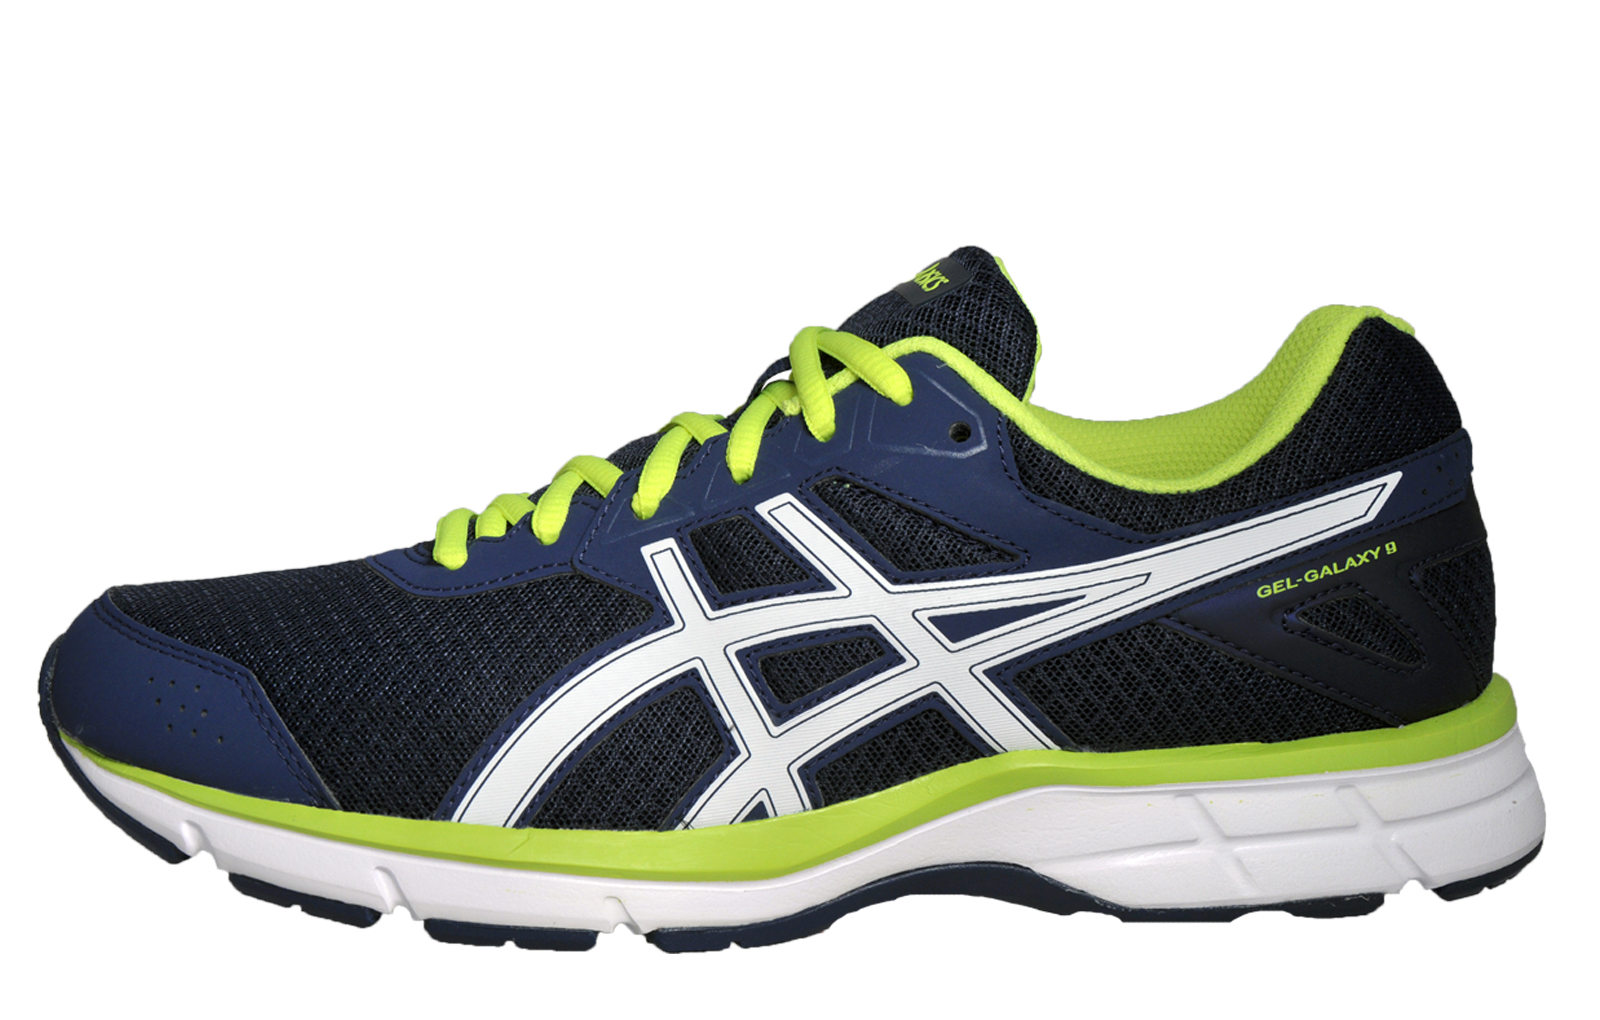 asics gel galaxy 9 mens running shoes fitness gym trainers. Black Bedroom Furniture Sets. Home Design Ideas